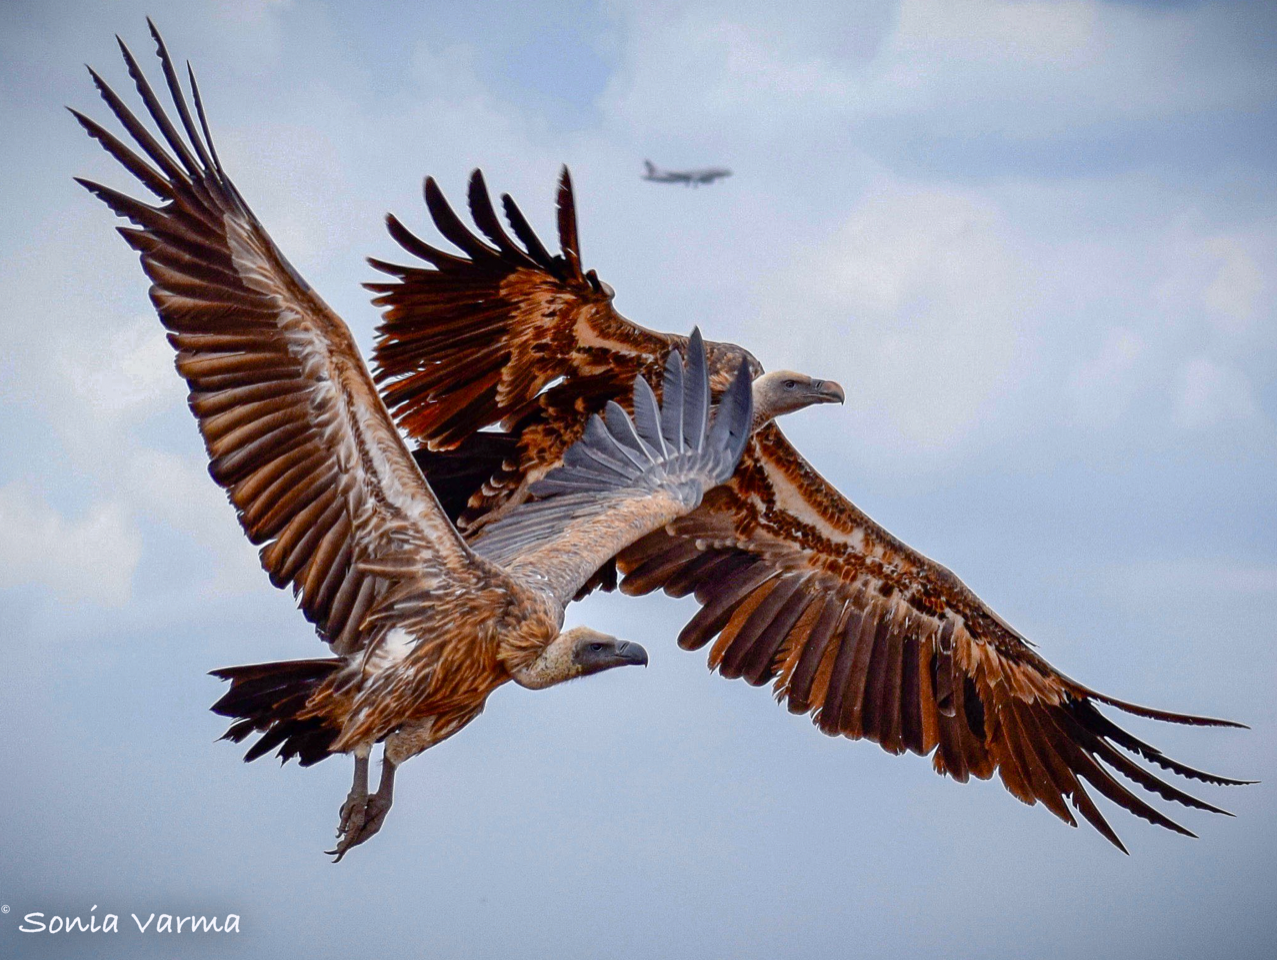 In the Sky – Nature's Treasures Photo Competition